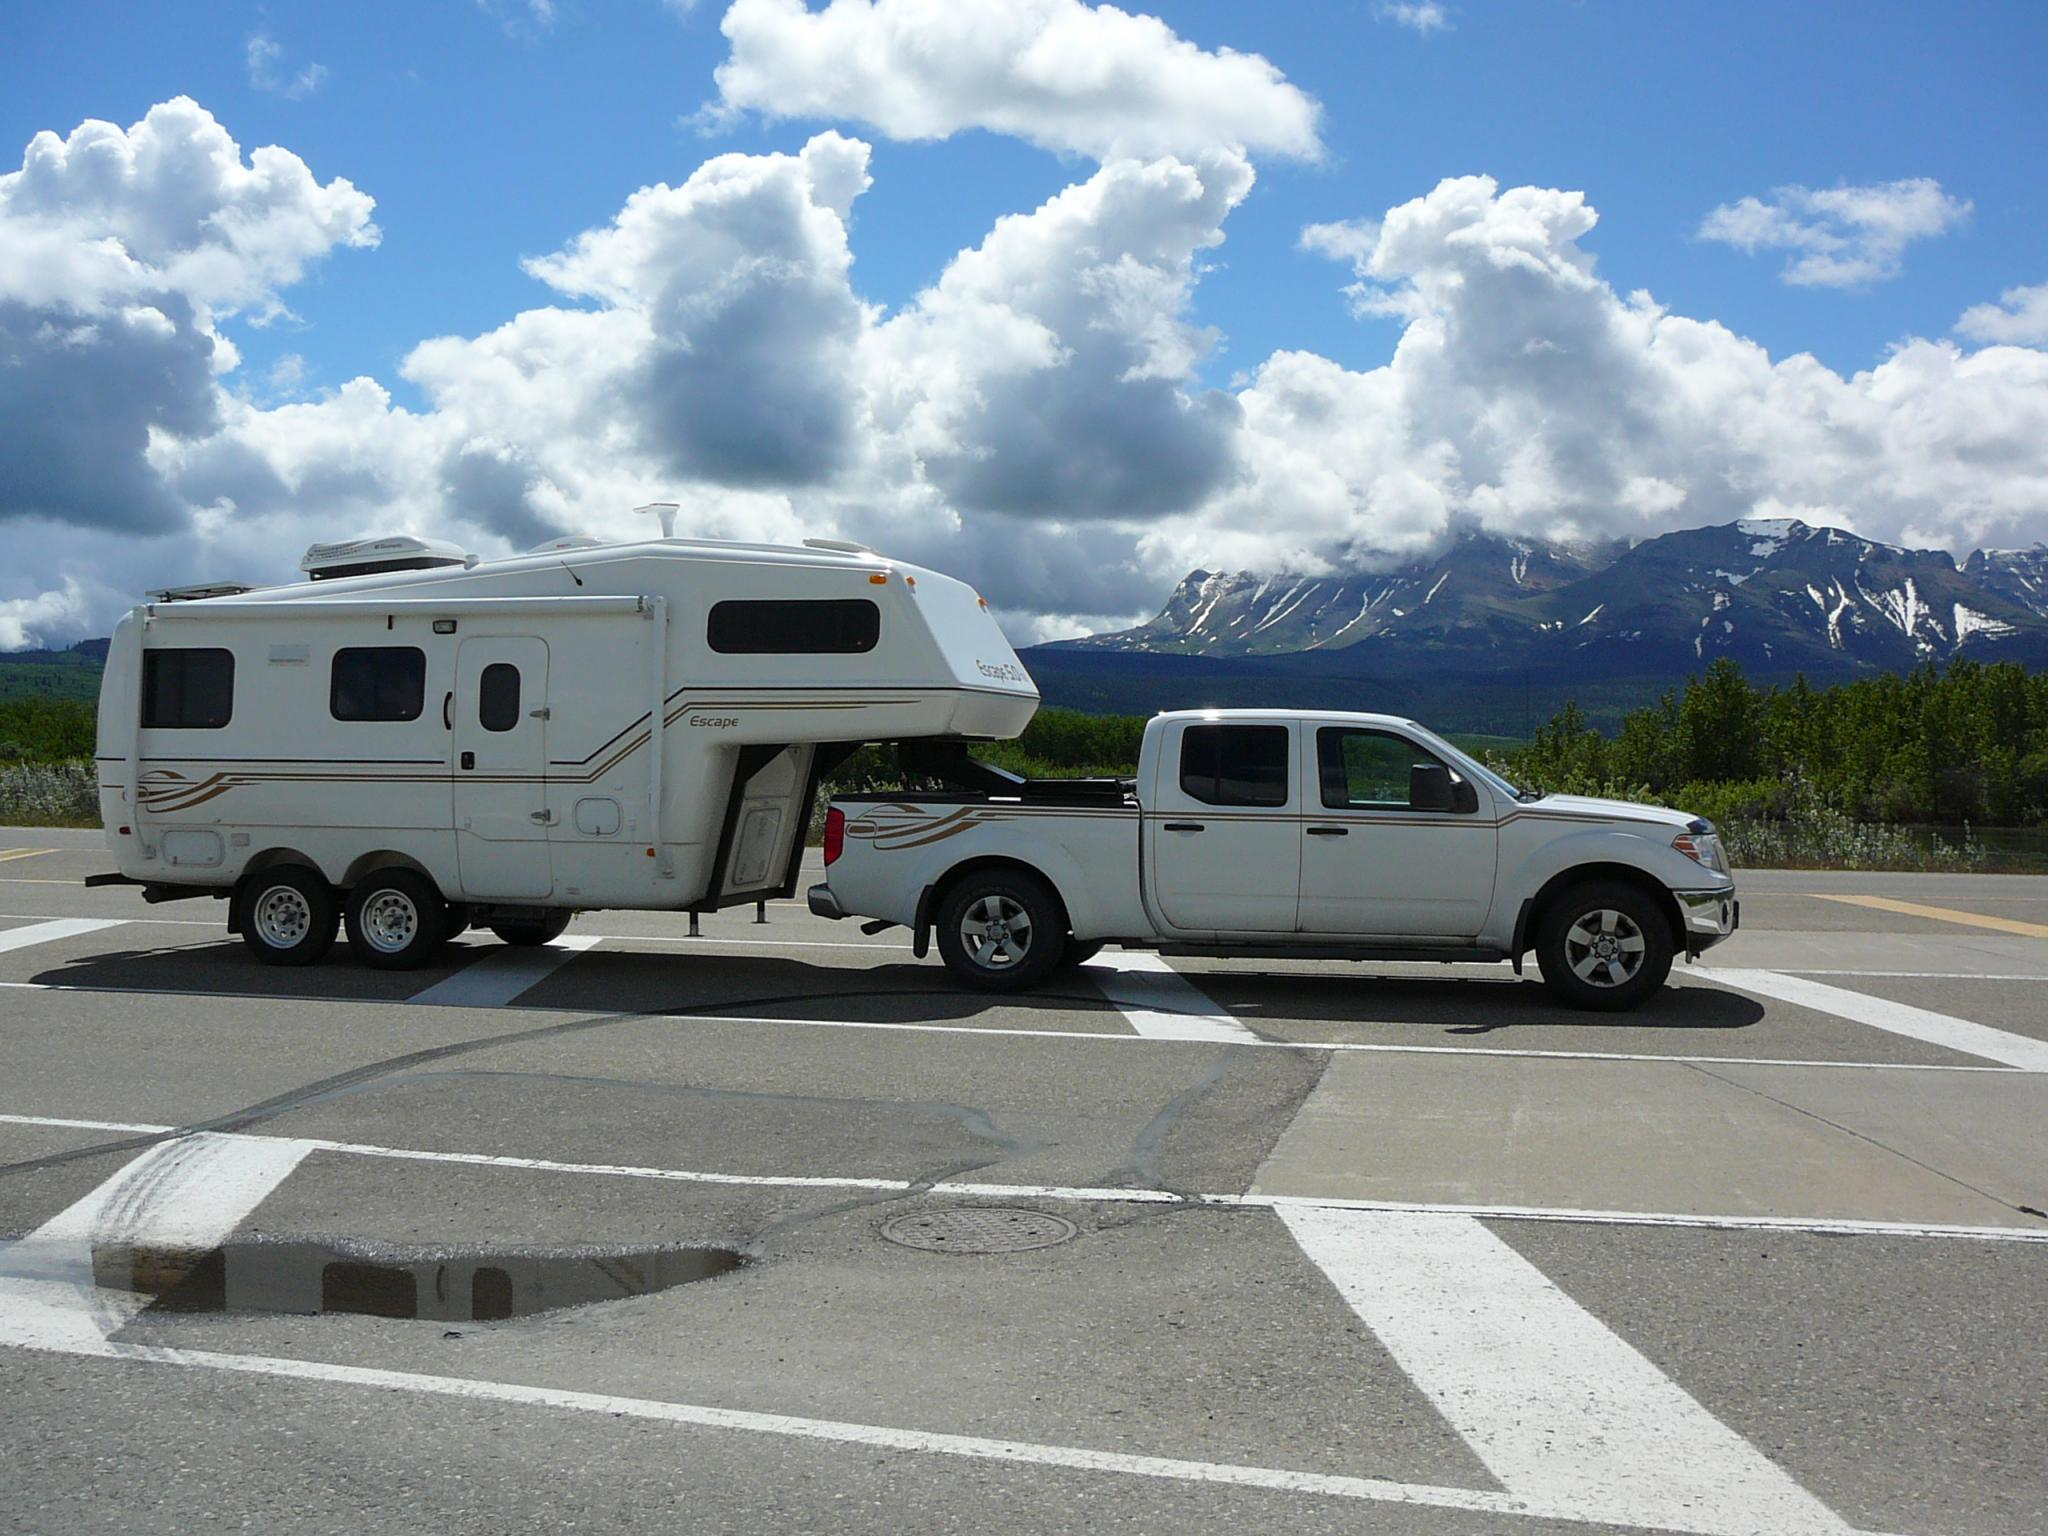 Lets see pics of what you tow - PICTURE THREAD - Page 29 ...